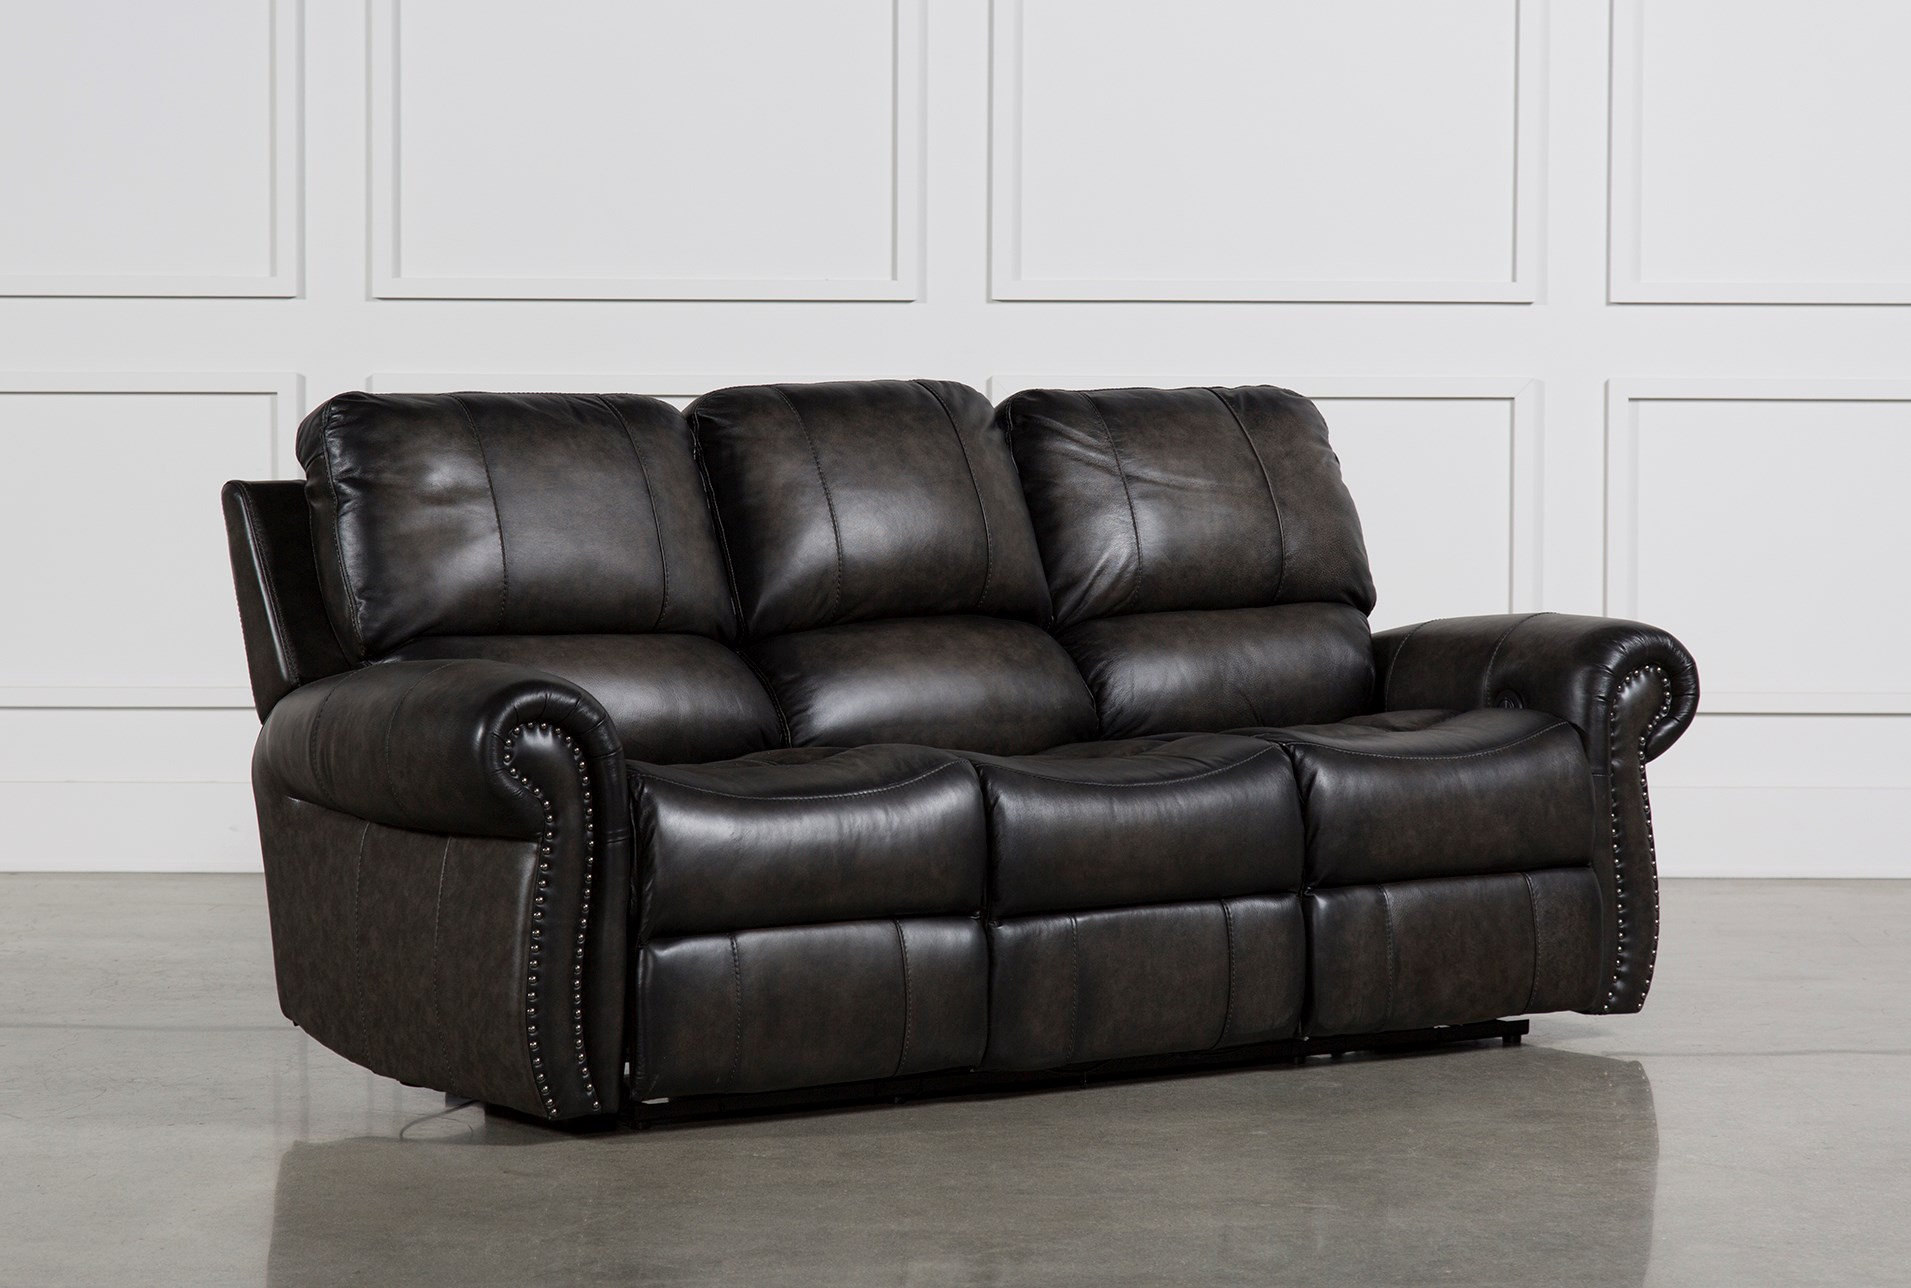 Leather Recliner Sofa Deals Abruzzo Brown Leather